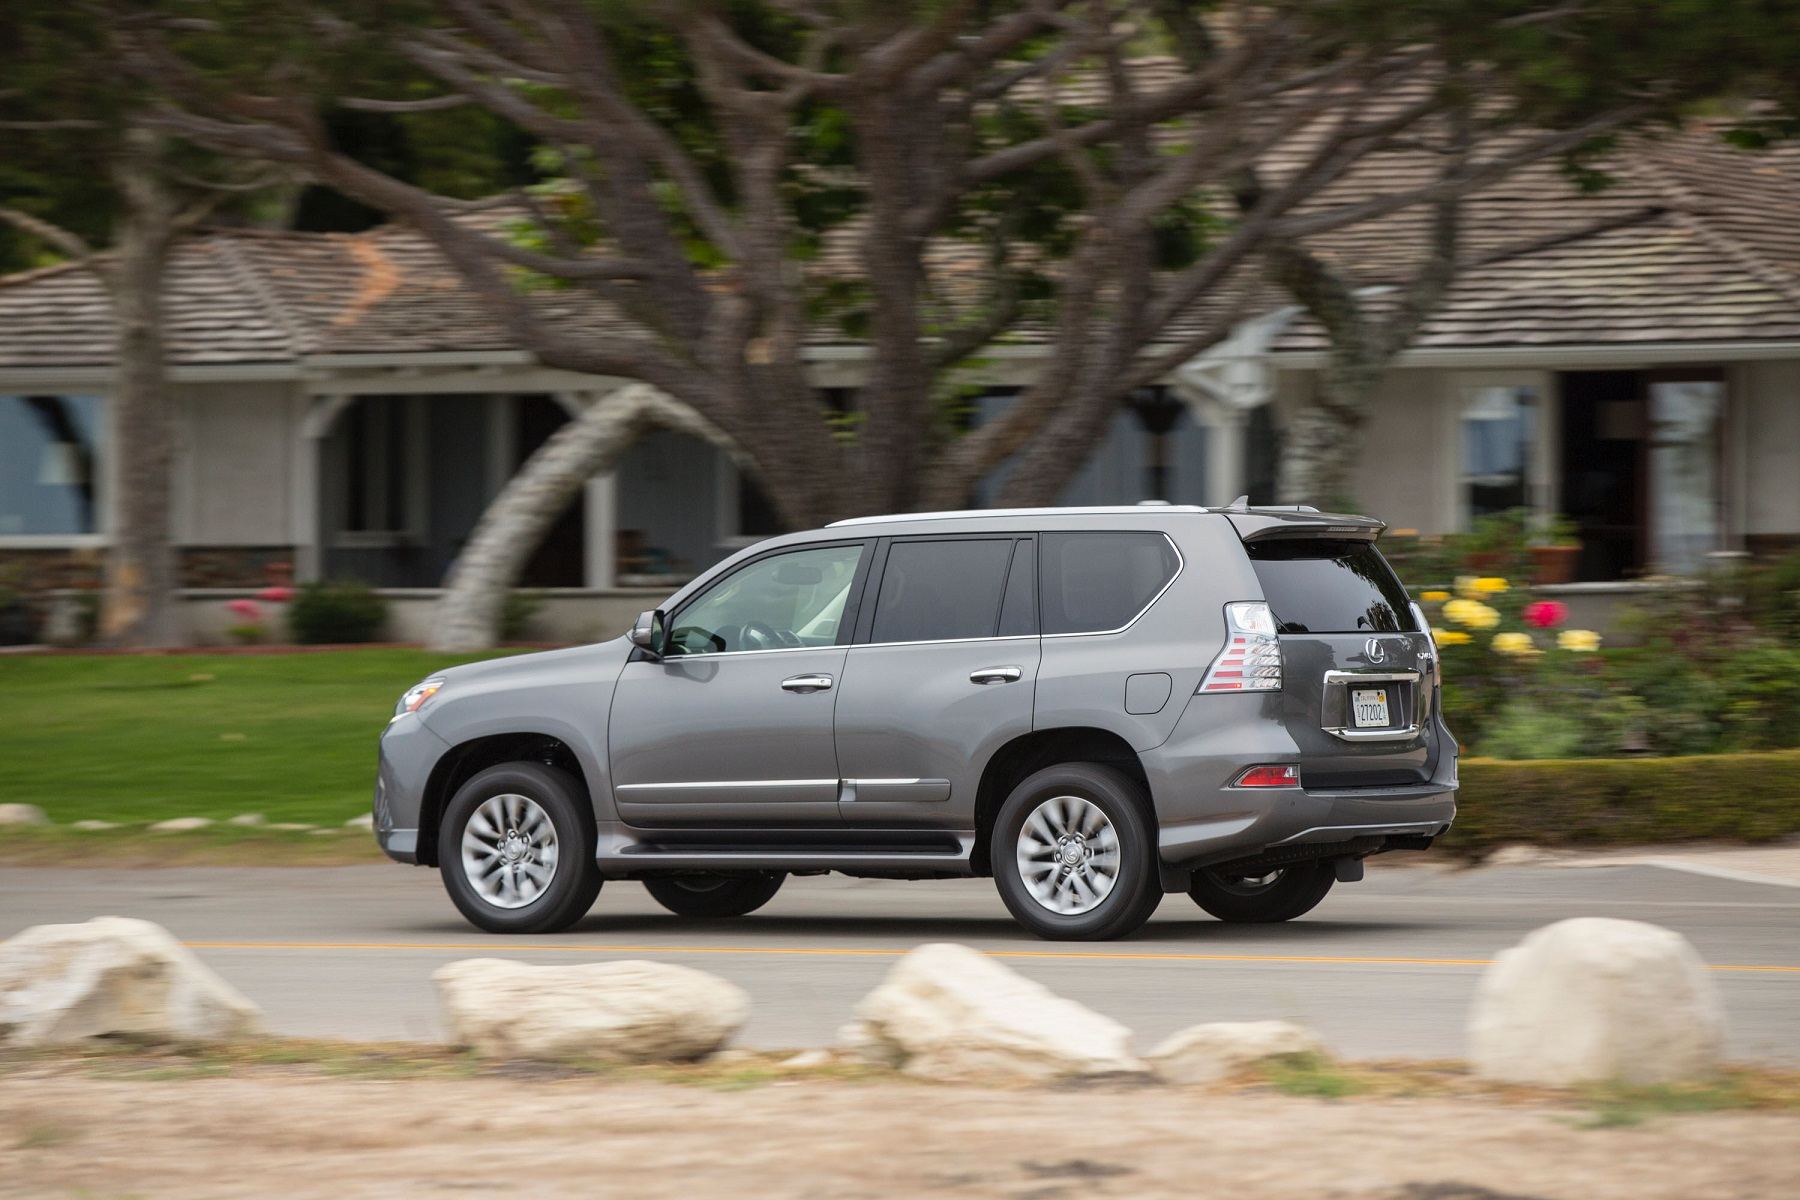 2016 Lexus GX 460 4WD Shelter in a Storm Get f the Road